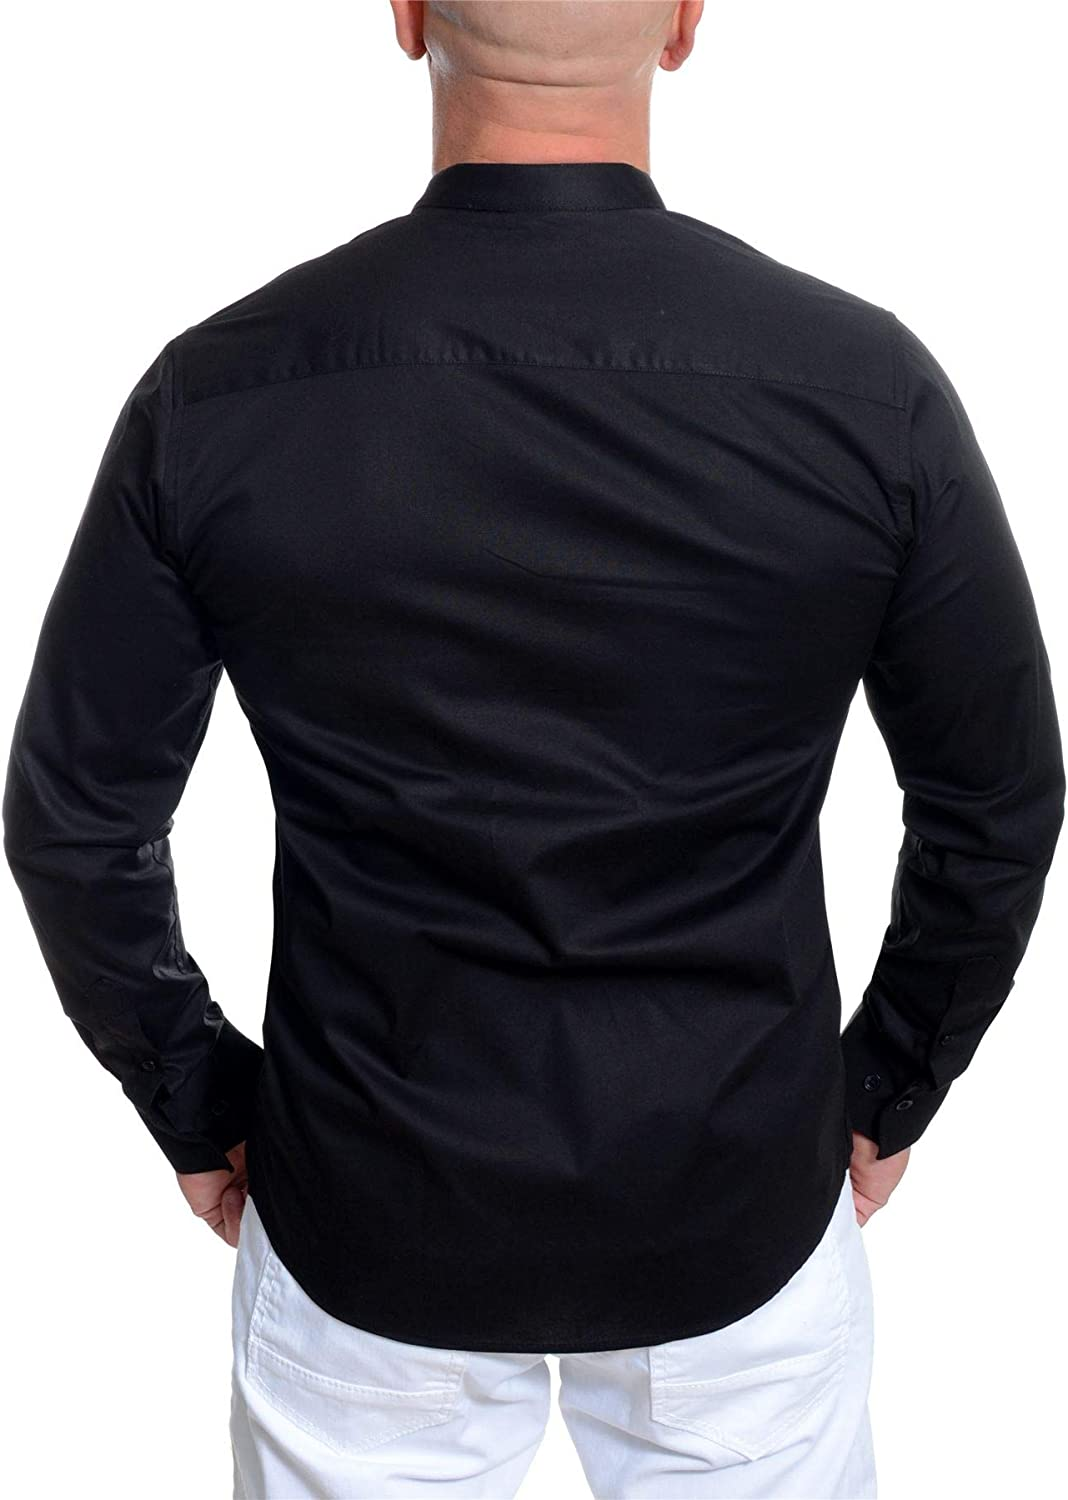 D/&R Fashion Mens Low Grandad Collar Slim Fit Roll Up Sleeves Shirt